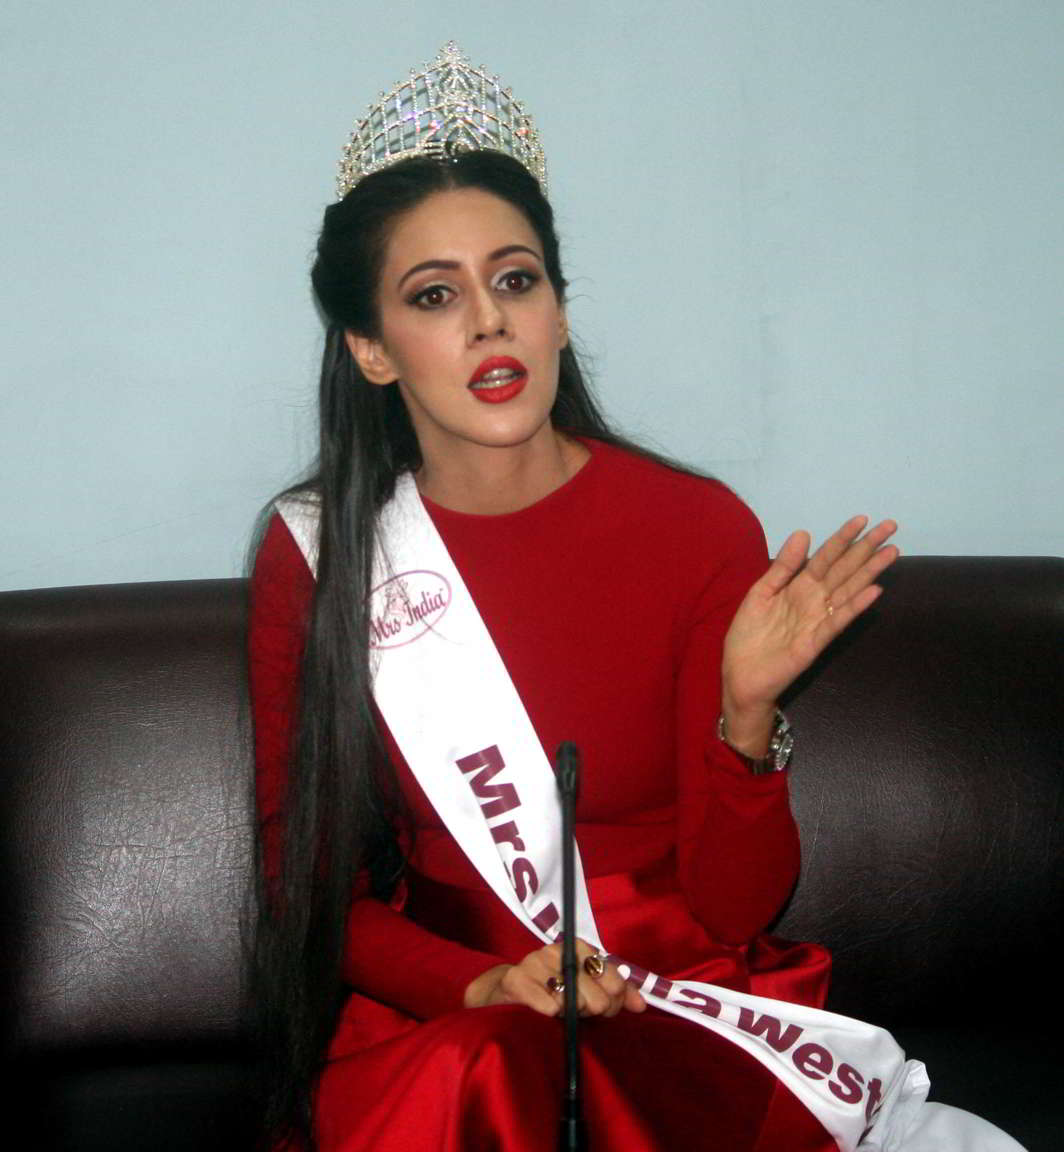 HAPPY DAY: Mrs India West Crown Winner Anjali Raut Gill interacts with mediapersons at Press Club in Chandigarh, UNI